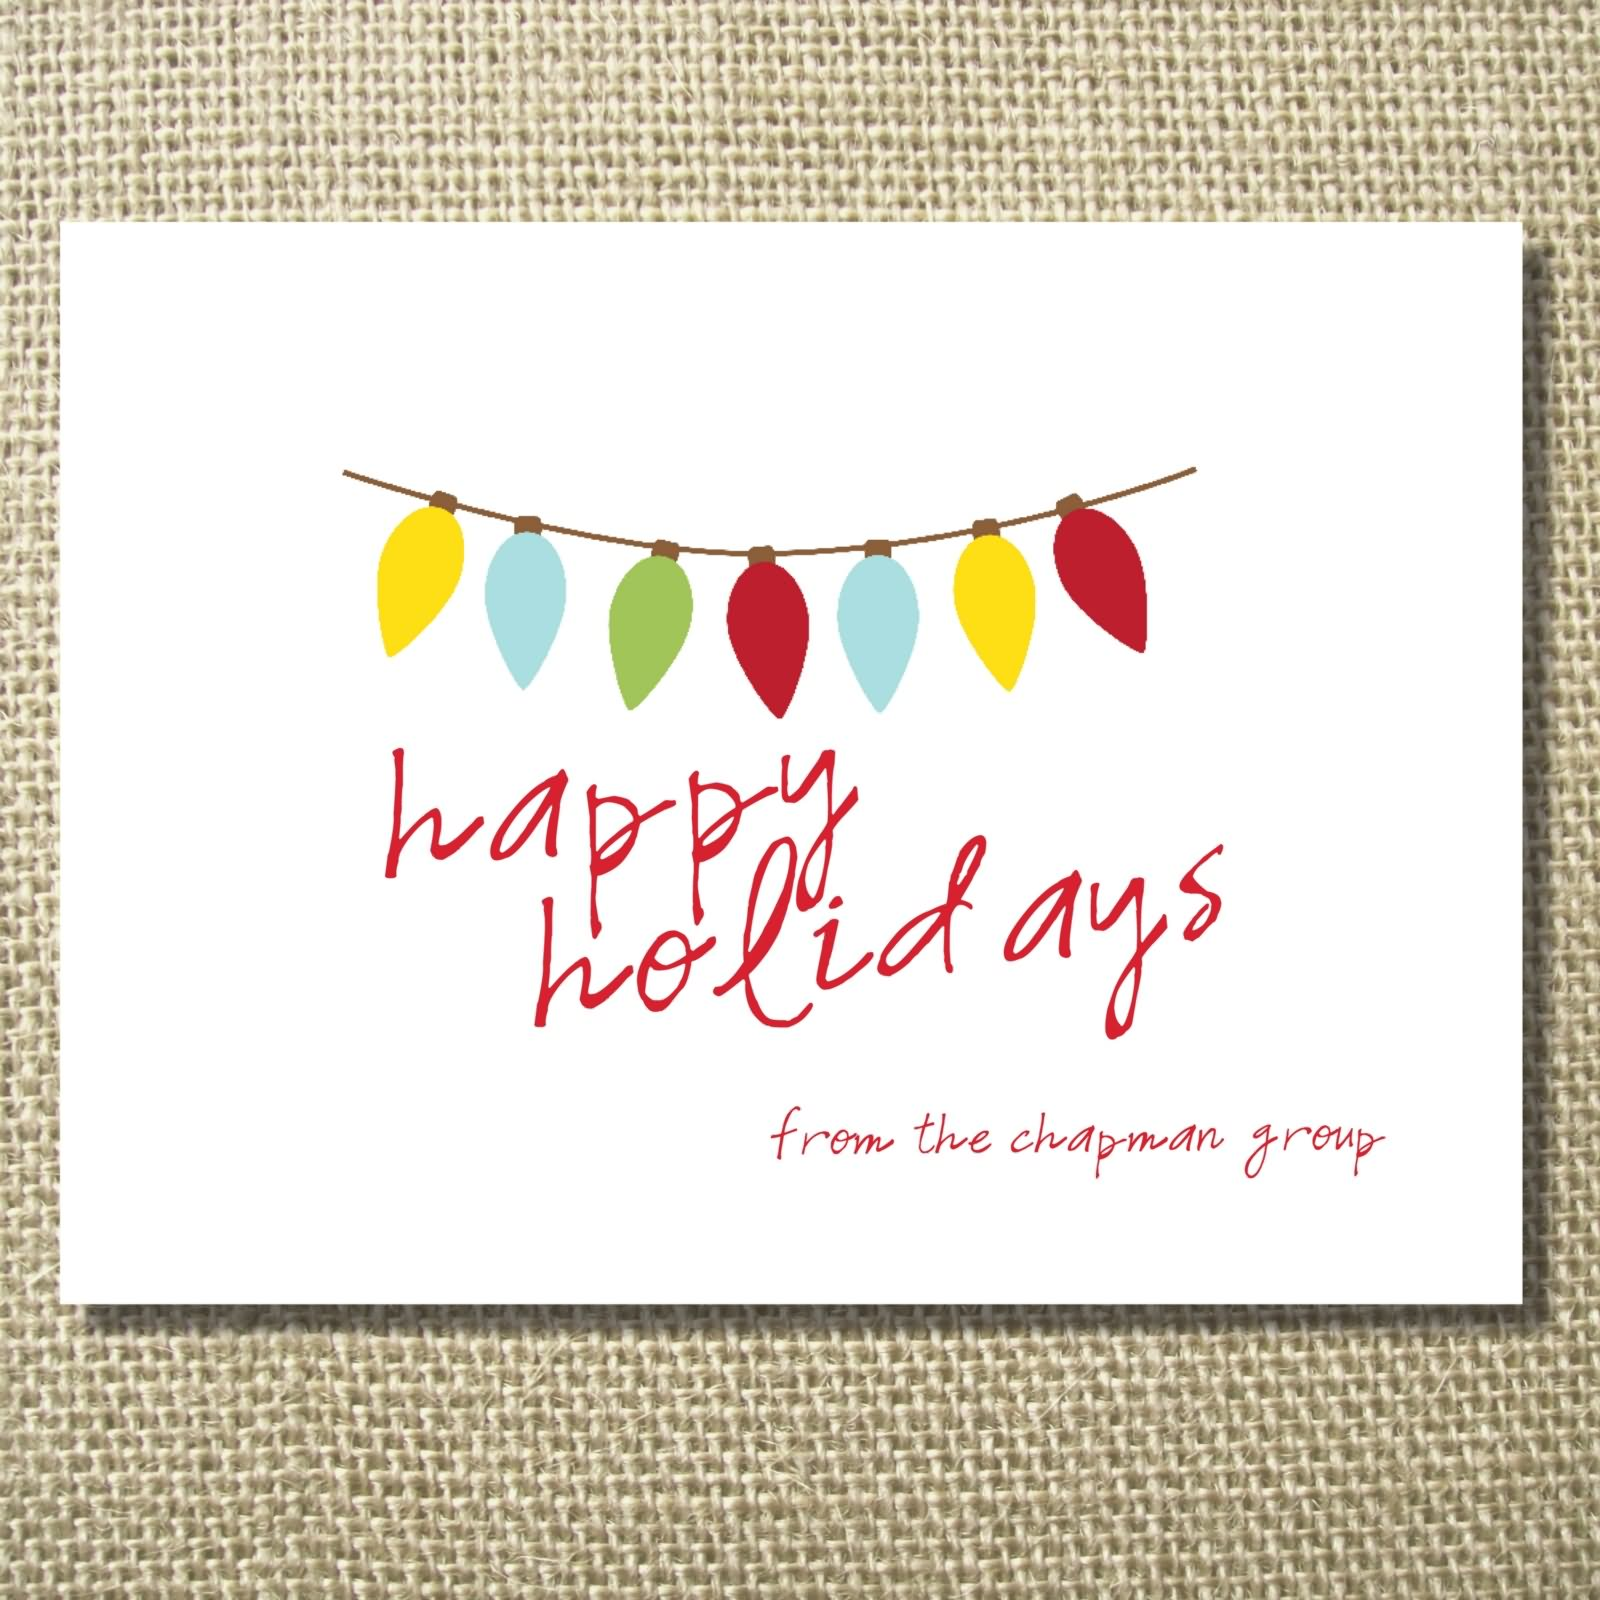 35 wonderful happy holidays greeting card pictures simple happy holidays greeting card kristyandbryce Choice Image